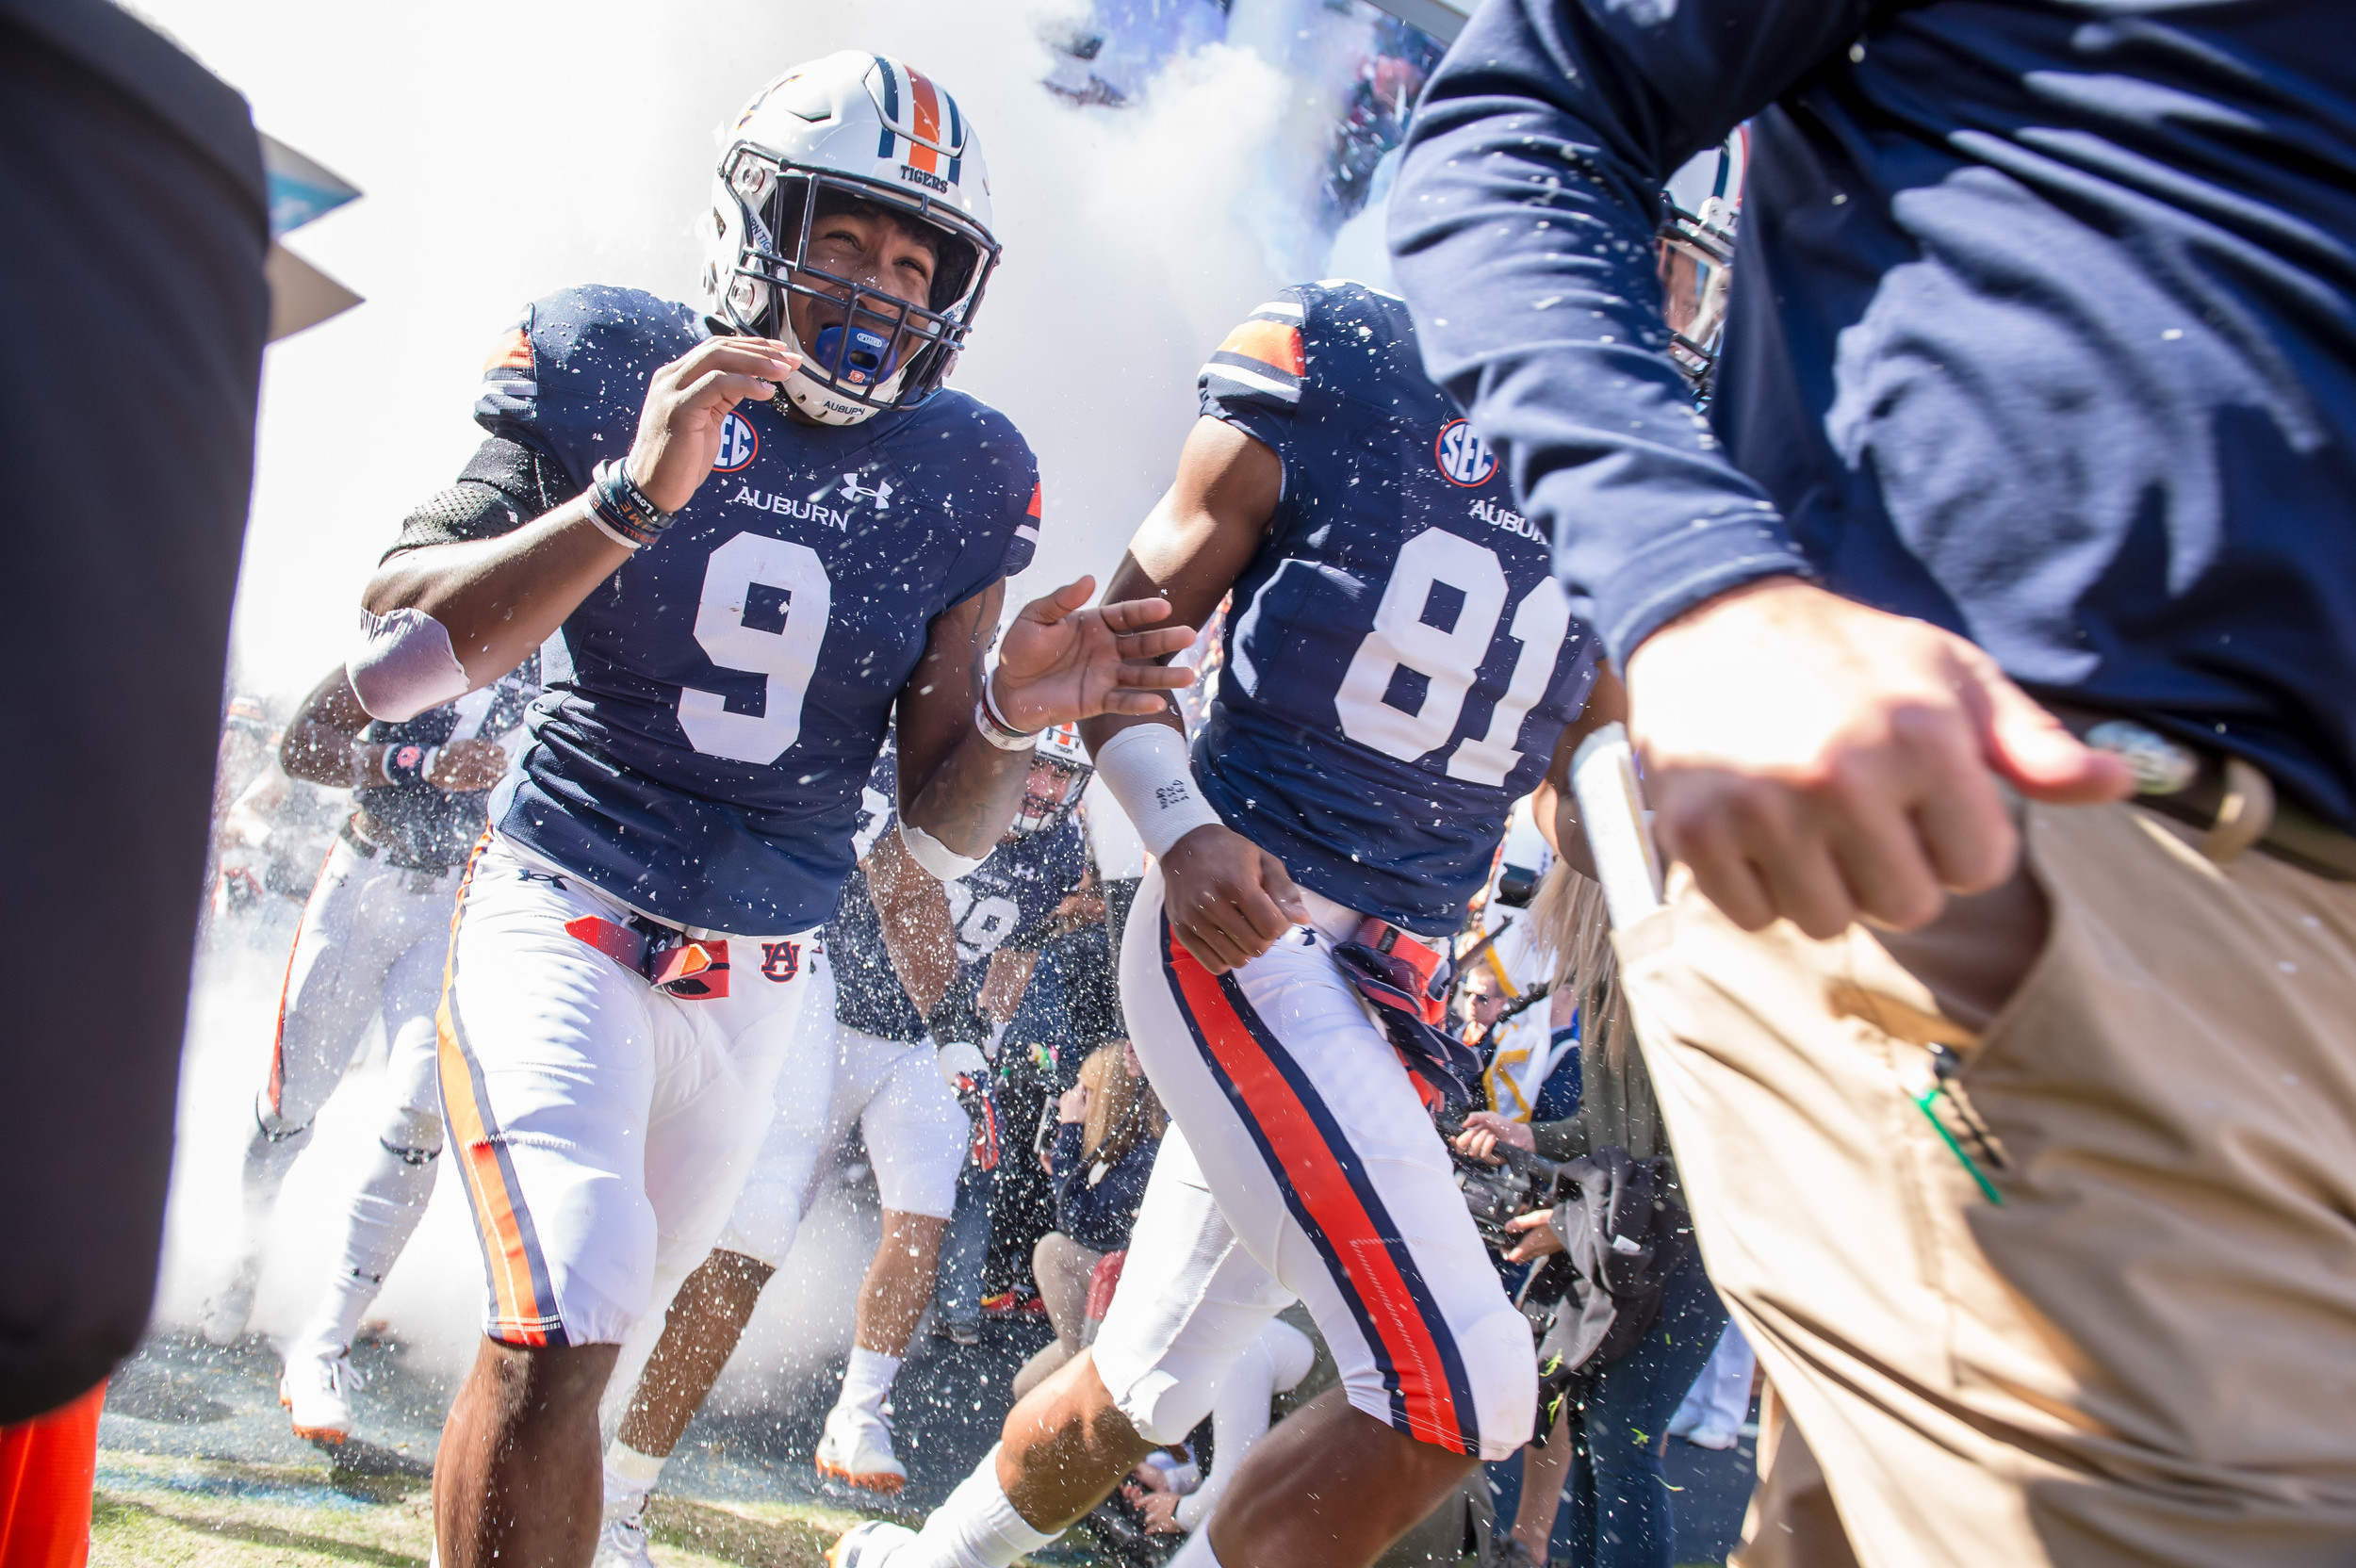 Auburn Tigers running back Kam Martin (9) runs out of the tunnel prior to an NCAA football game against the Texas A&M Aggies Saturday, November 3, 2018, at Jordan-Hare Stadium in Auburn, Ala. (Photo by Jeff Johnsey)